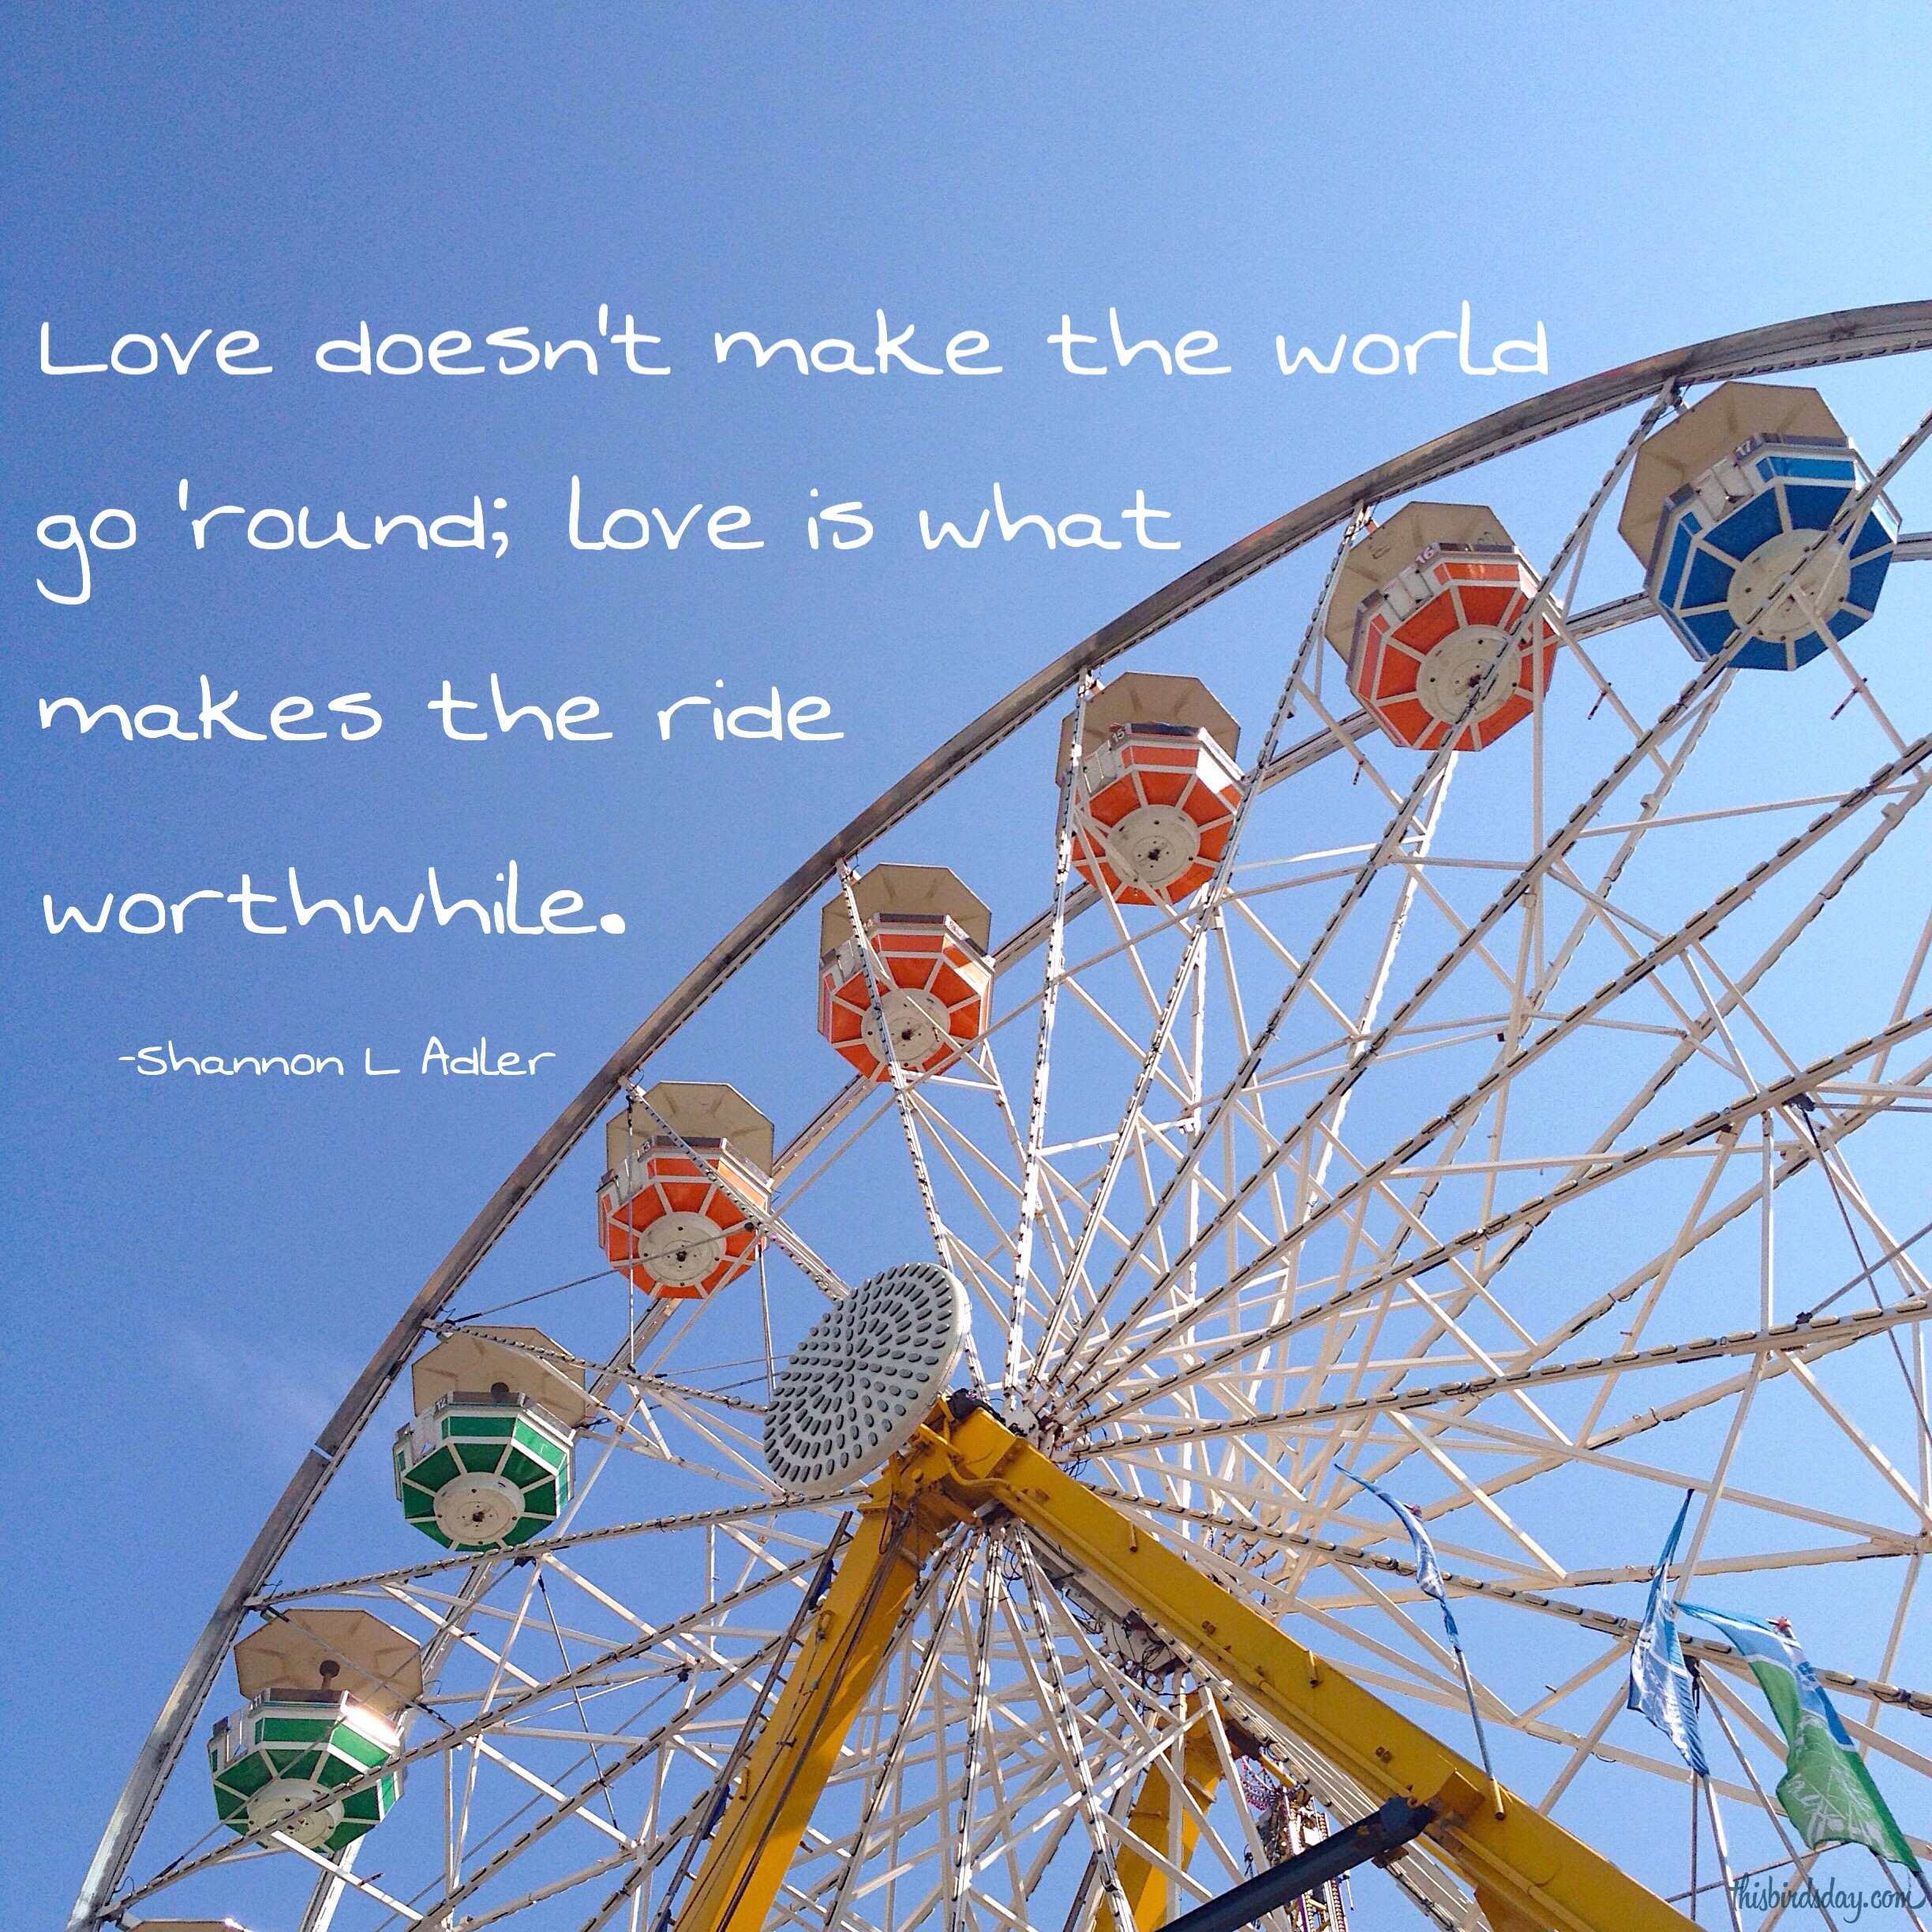 """Love doesn't make the world go 'round; love is what makes the ride worthwhile."" Shannon L Adler. Photo copyright Sheri Landry"